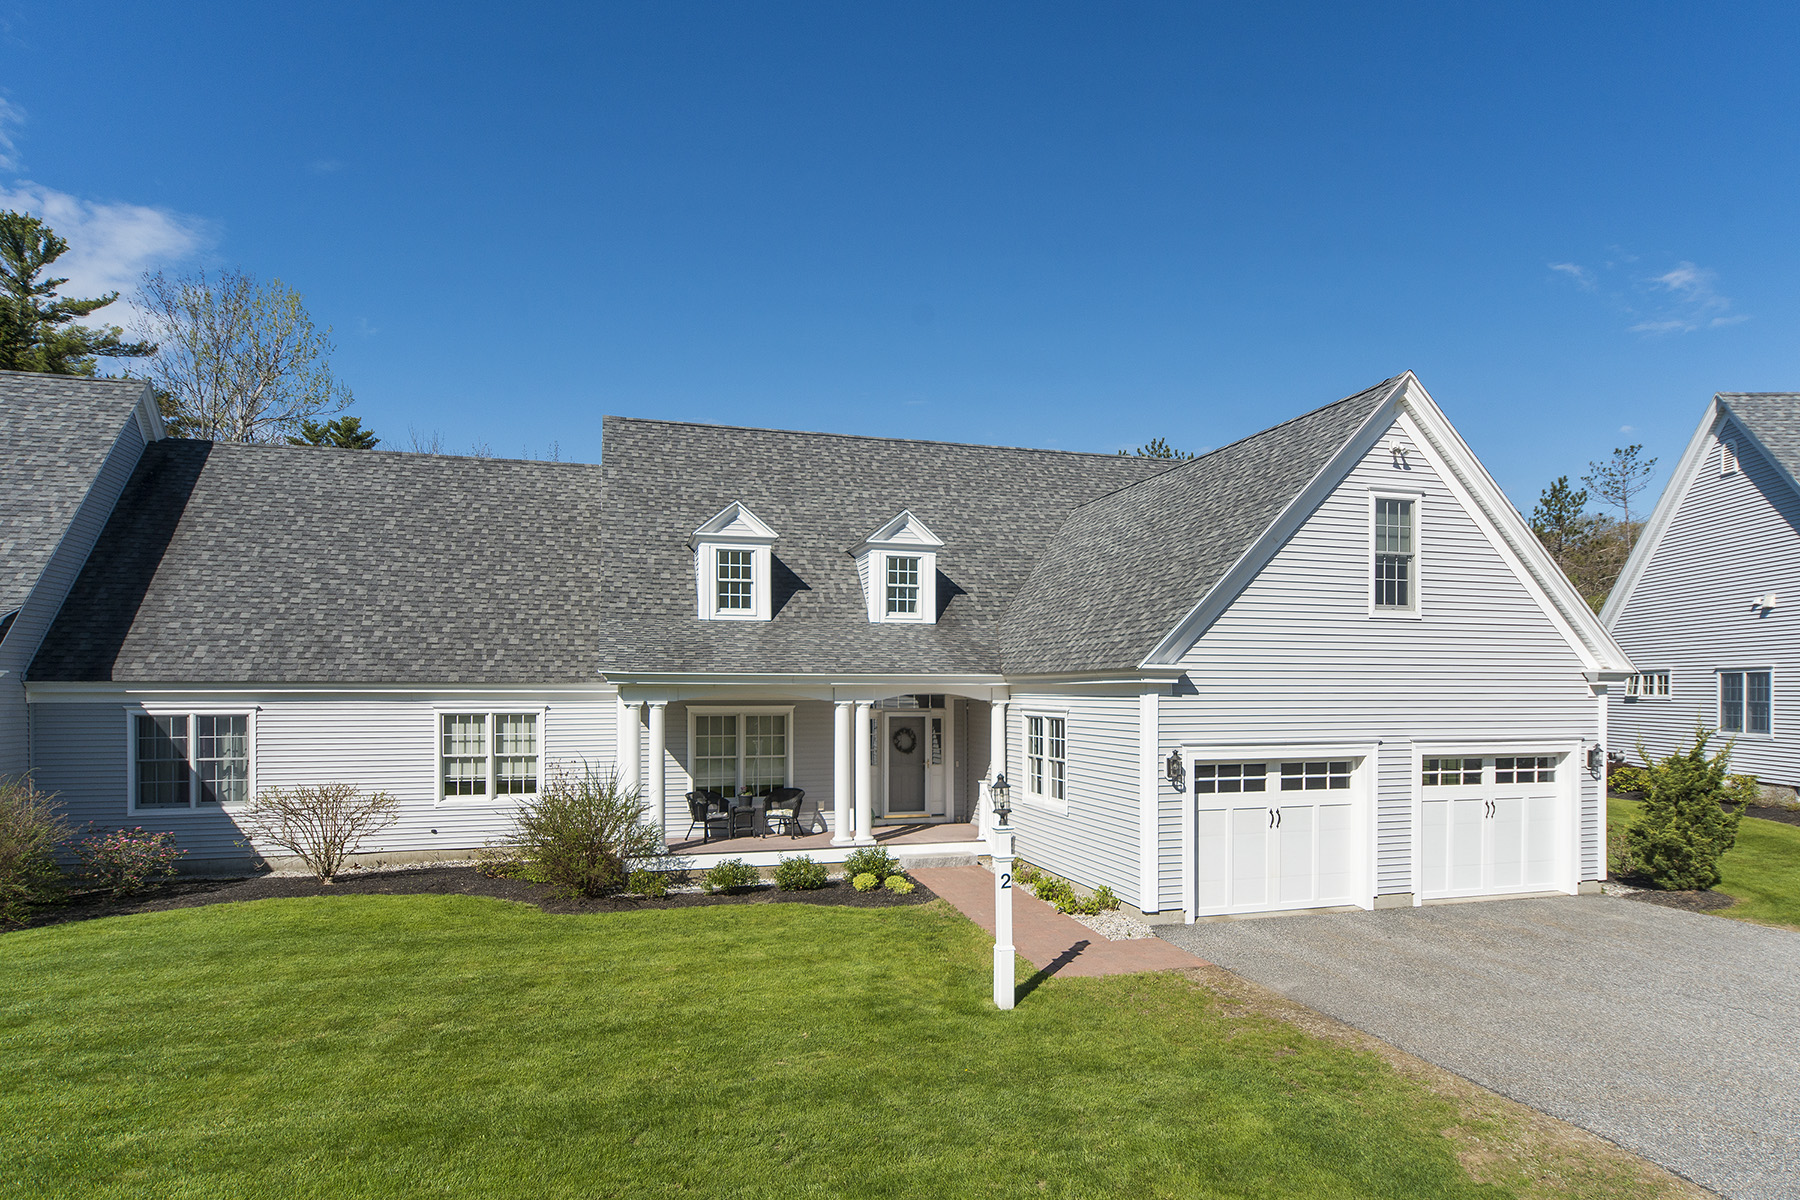 2 Winding Creek Ln, Freeport, ME 04032